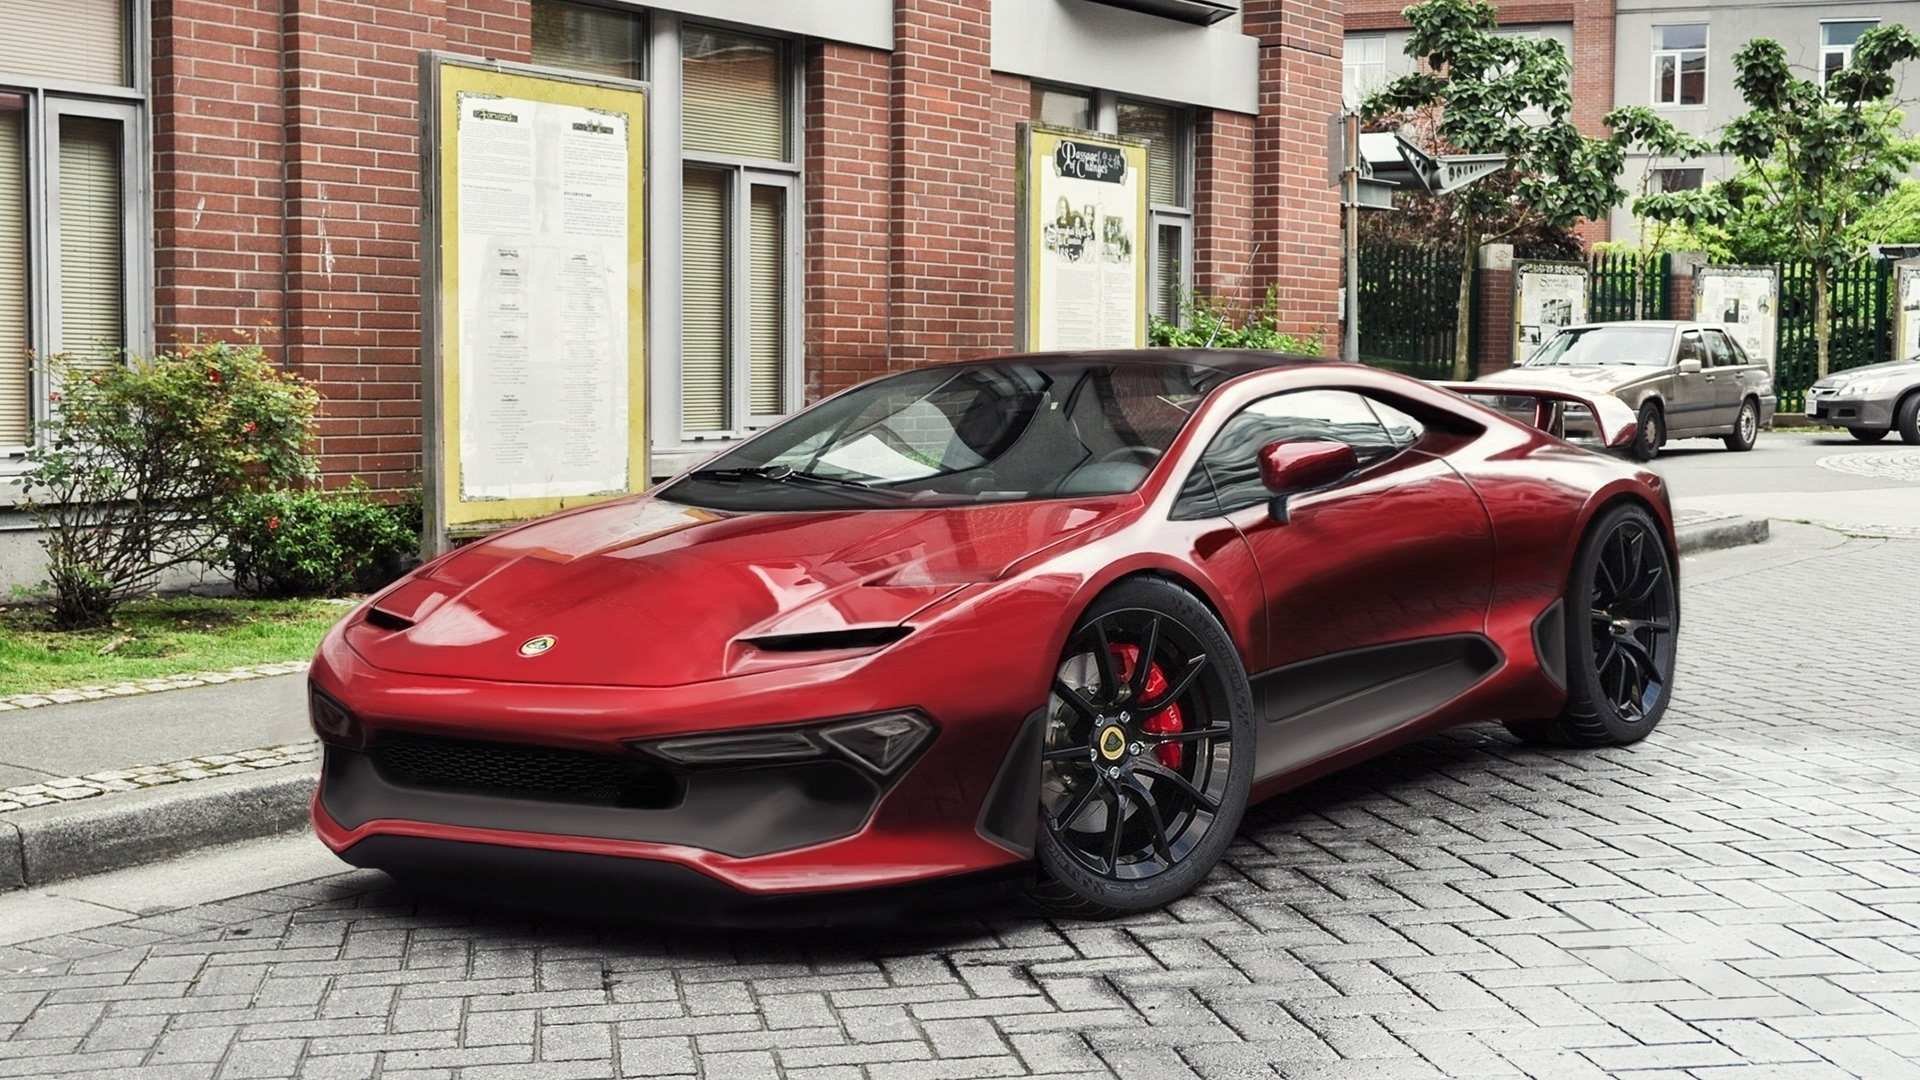 90 New 2019 Lotus Esprit Photos